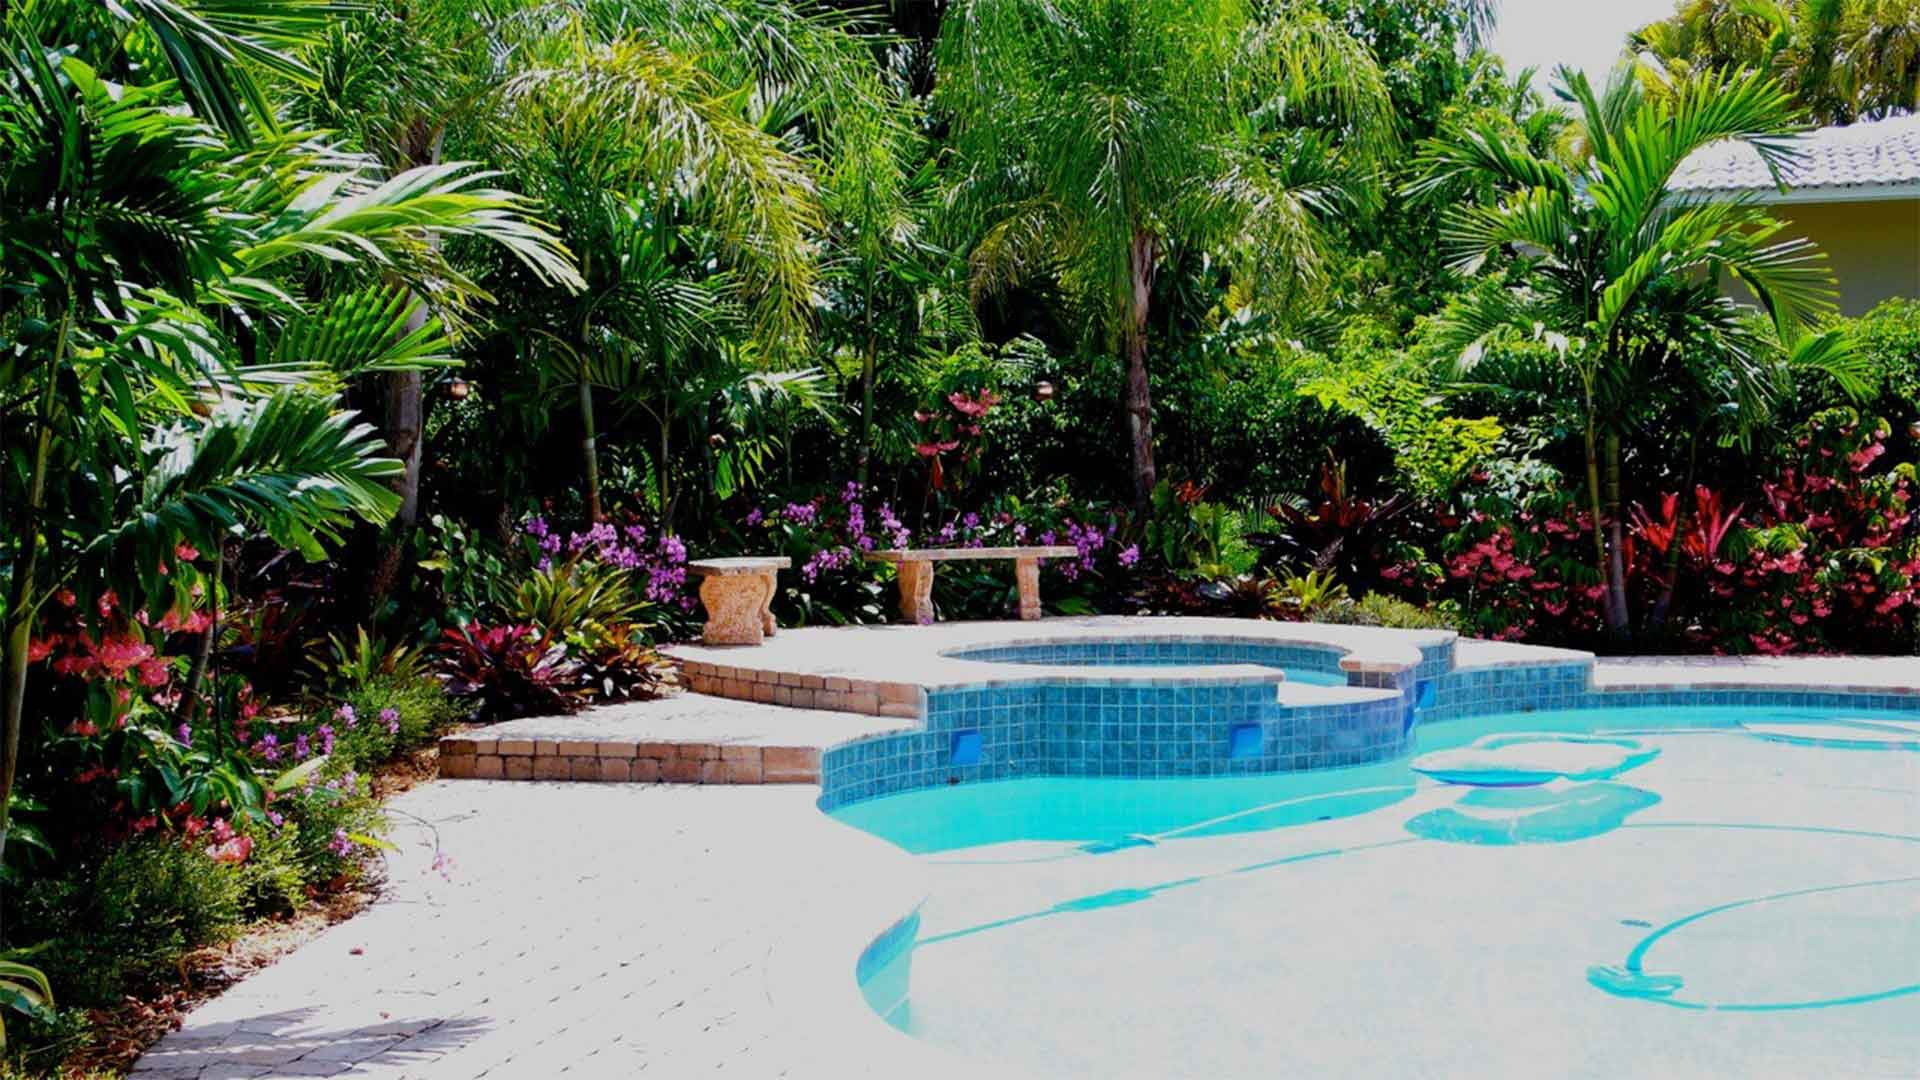 garden design landscaping. Premier Horticulture Landscape Design  Landscaping and Garden slide 5 in Miami Coral